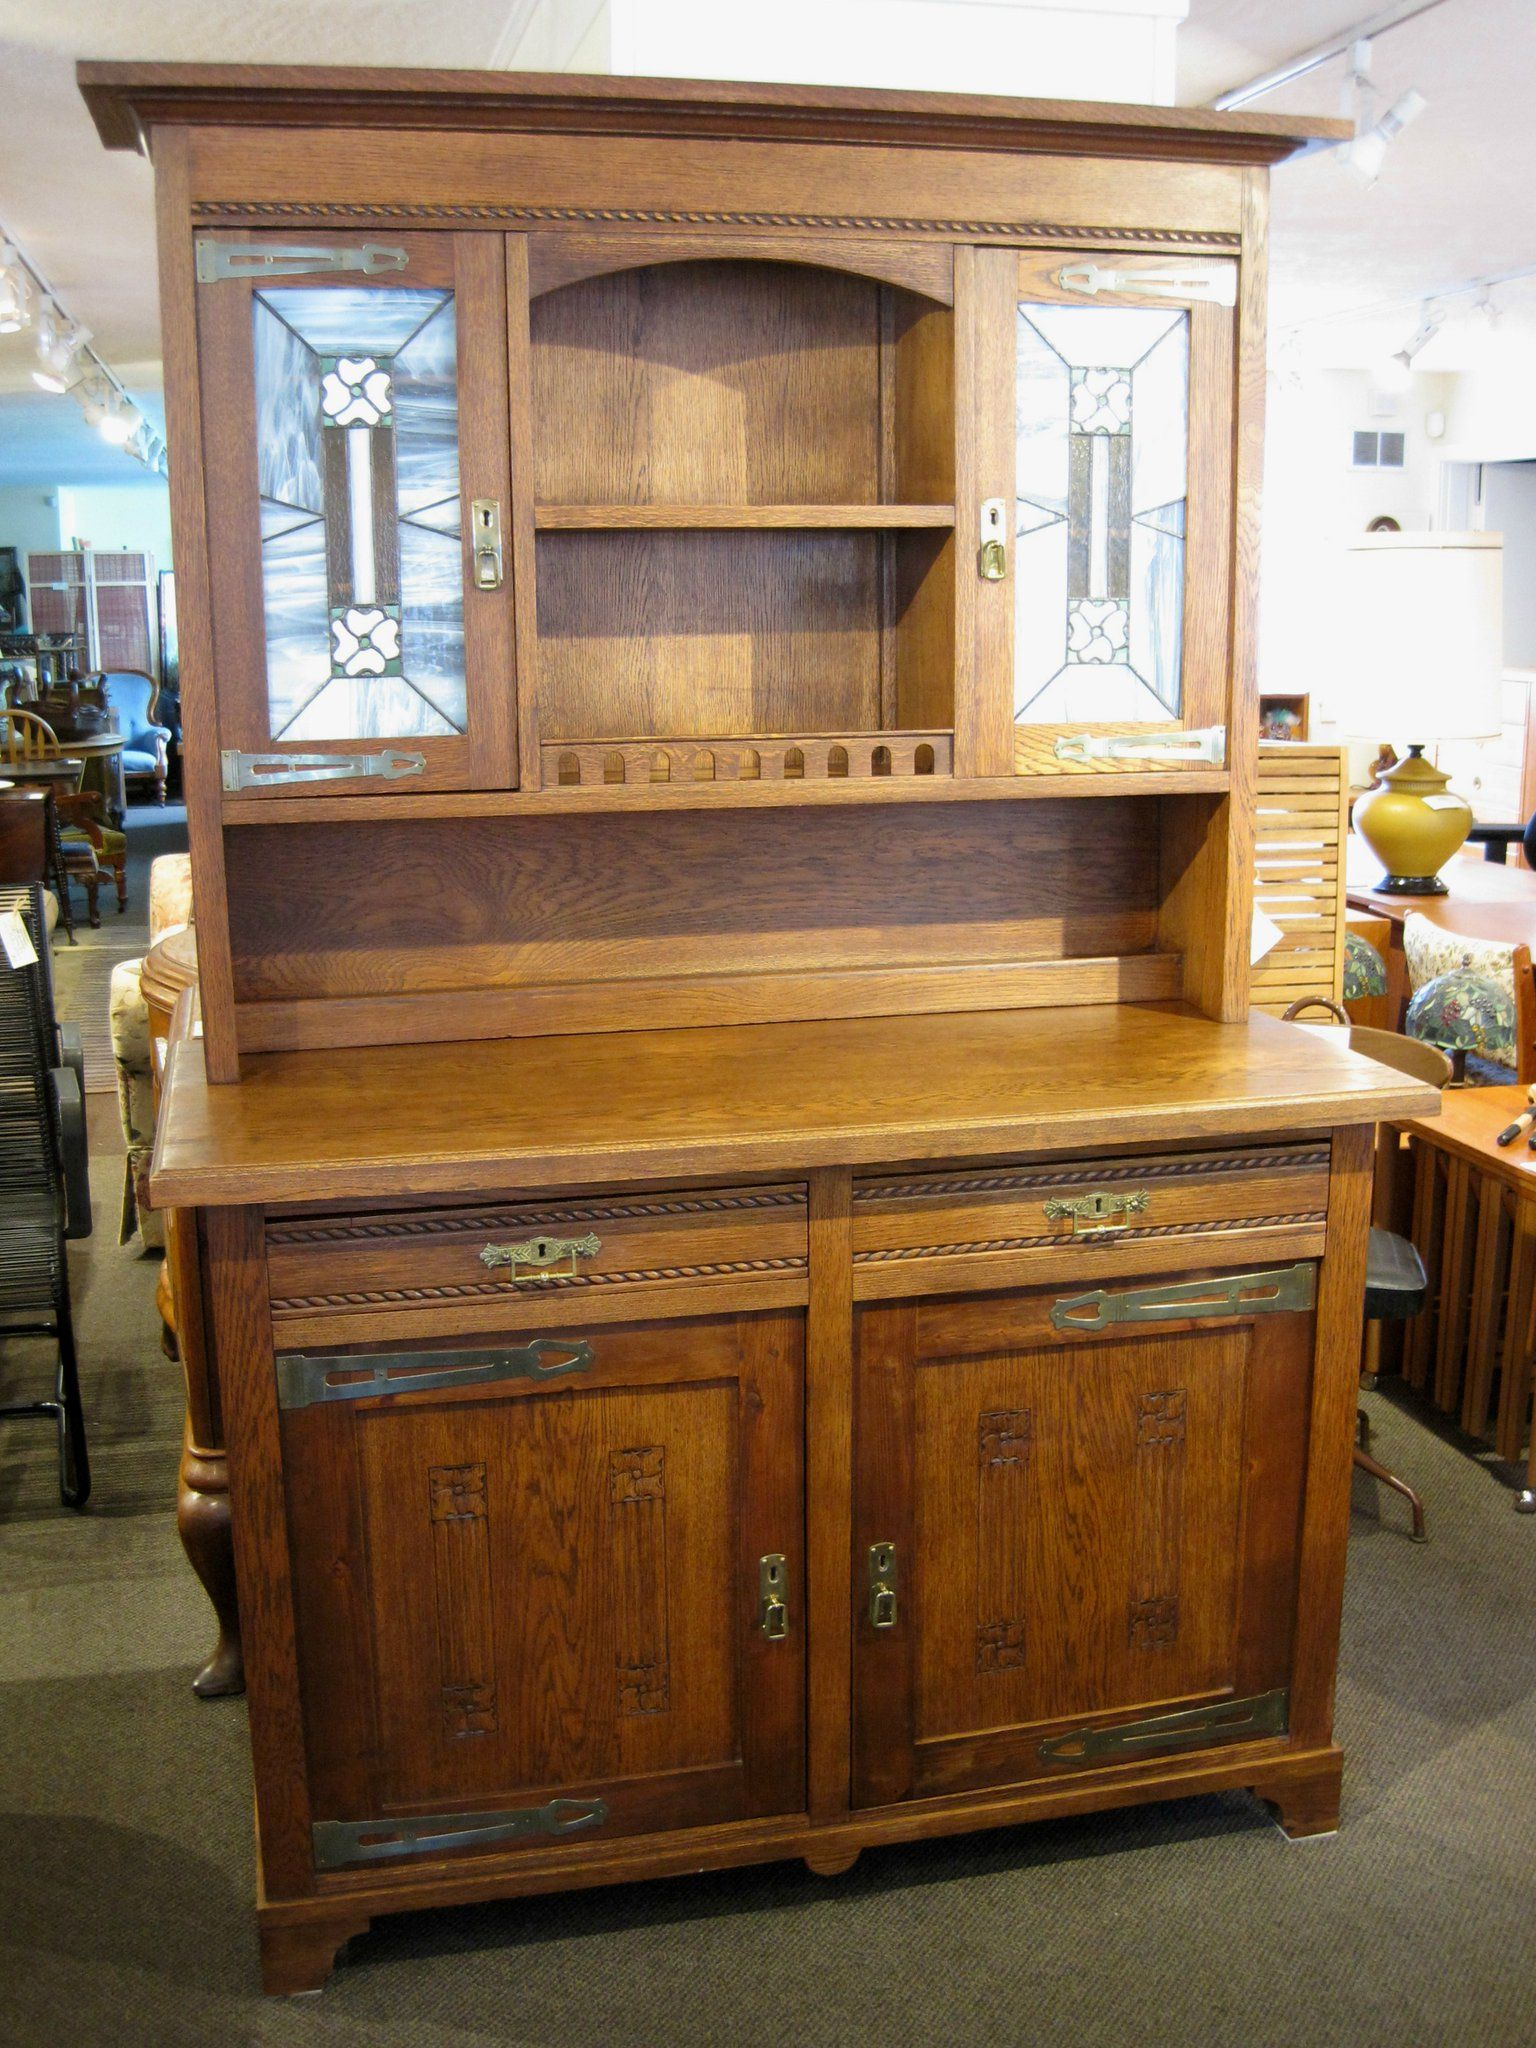 A handsome antique Arts & Crafts sideboard with stained glass doors